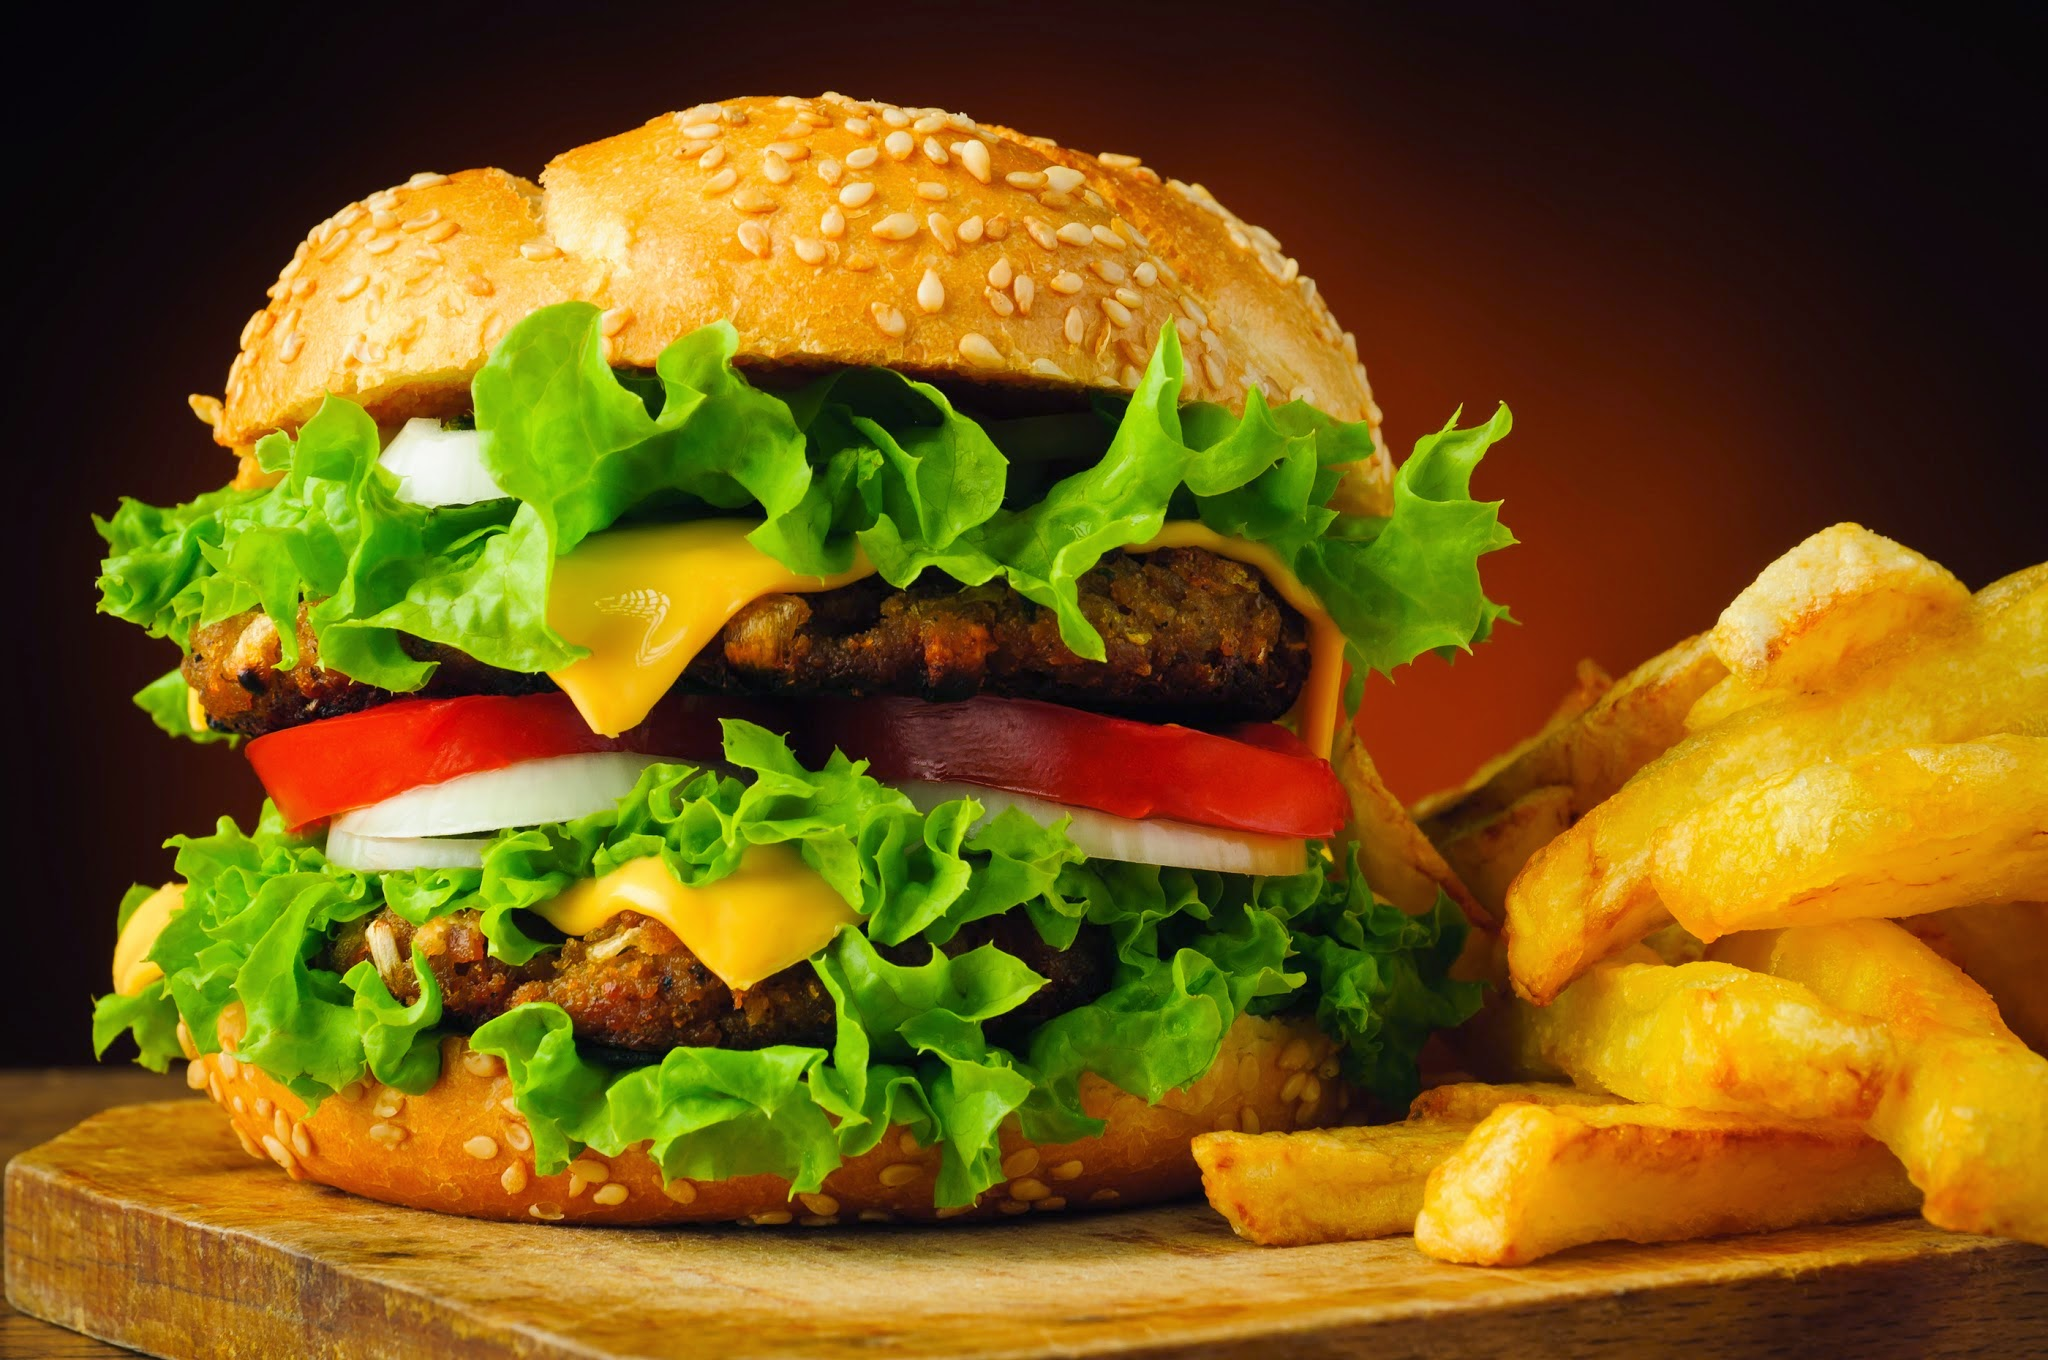 Cheeseburger Wallpapers High Quality Download 2048x1360